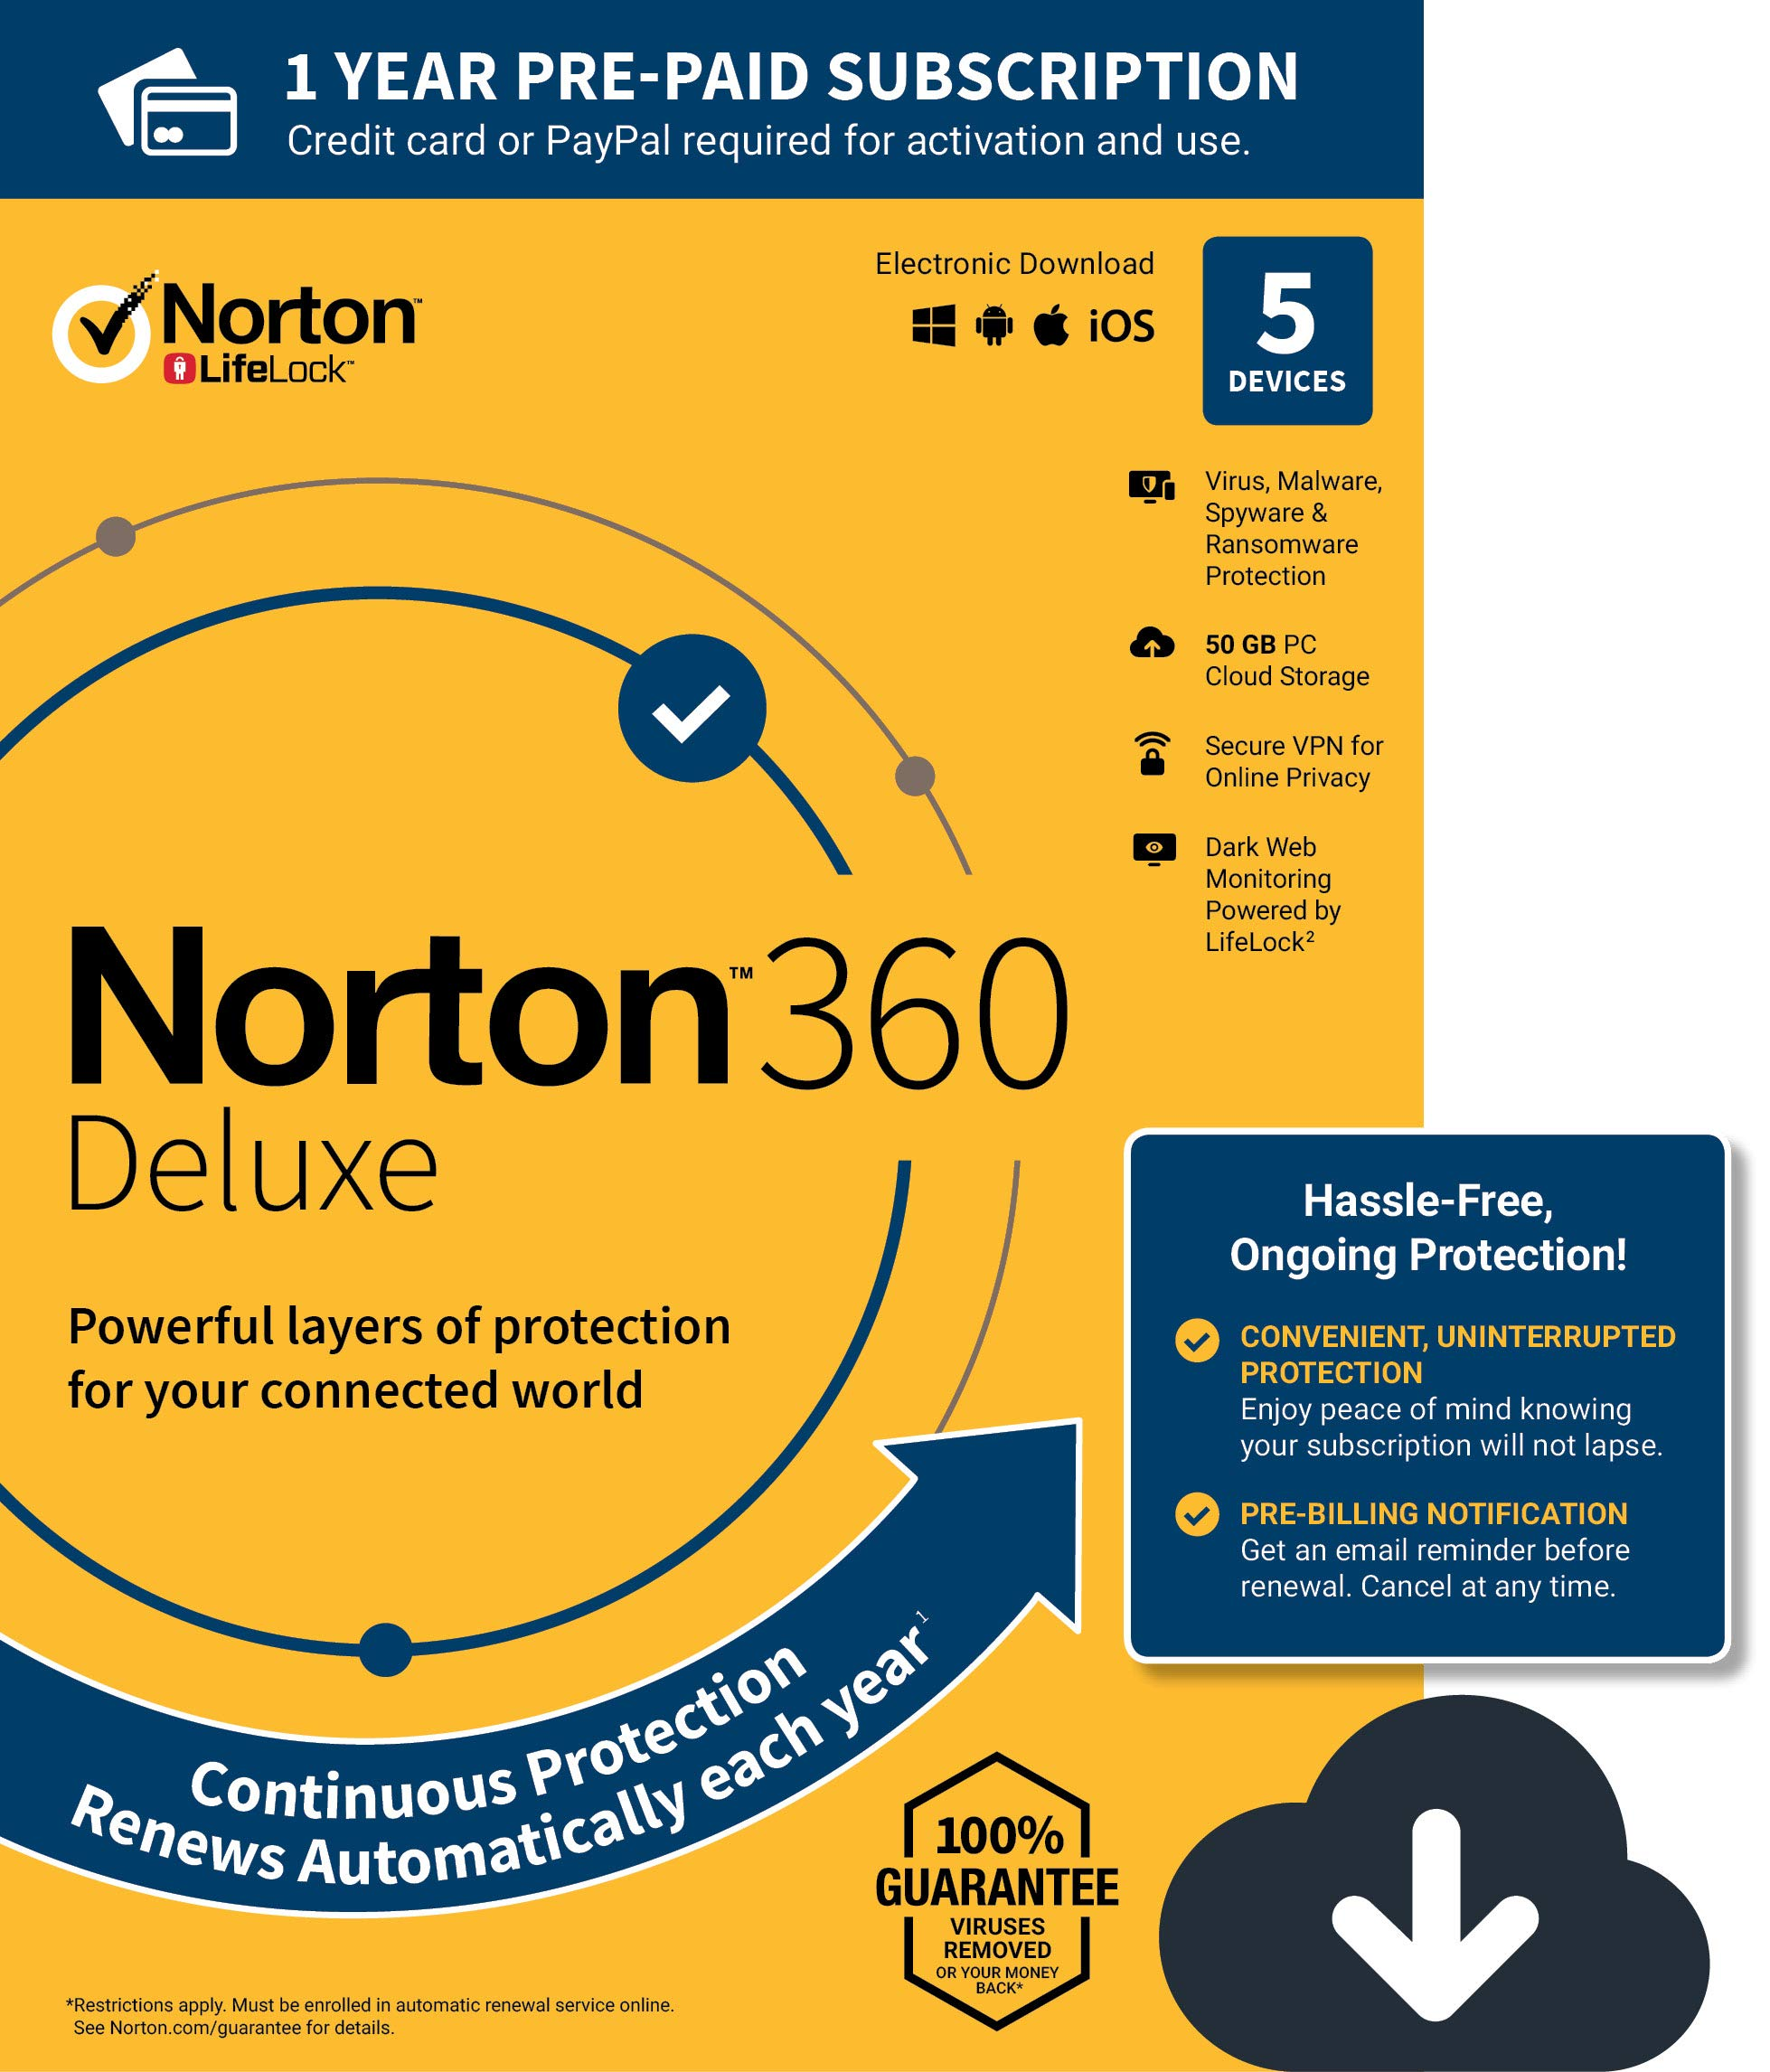 NEW Norton 360 Deluxe - Antivirus software for 5 Devices with Auto Renewal - Includes VPN, PC Cloud Backup & Dark Web Monitoring powered by LifeLock [PC/Mac/Mobile Download] by Symantec